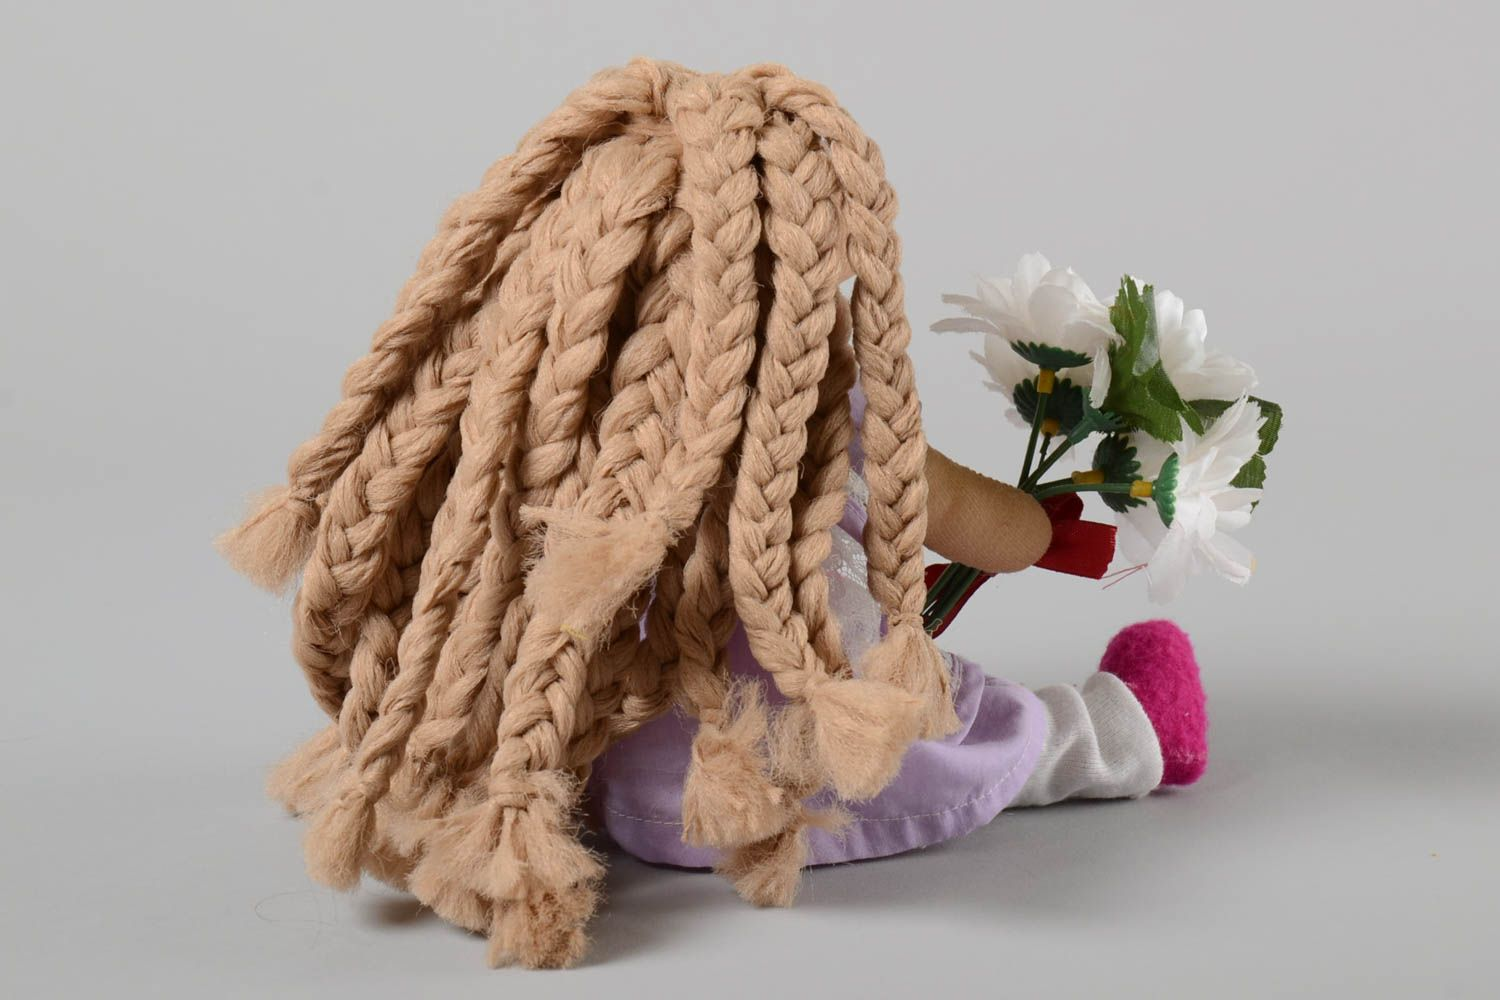 Unusual handmade soft toy stuffed toy rag doll house and home gifts for kids photo 4